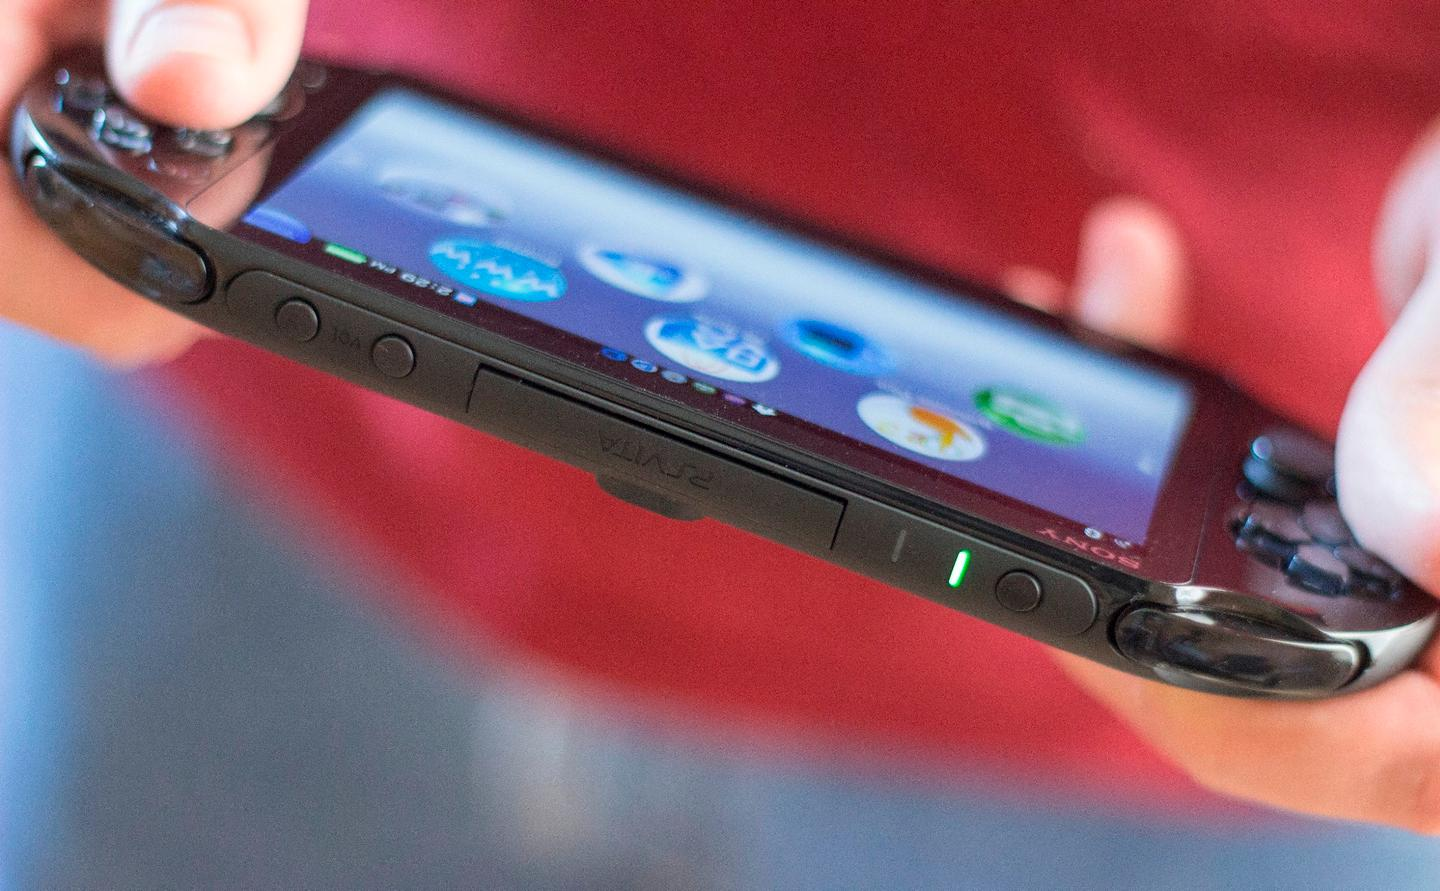 Why the PS Vita still matters in 2015